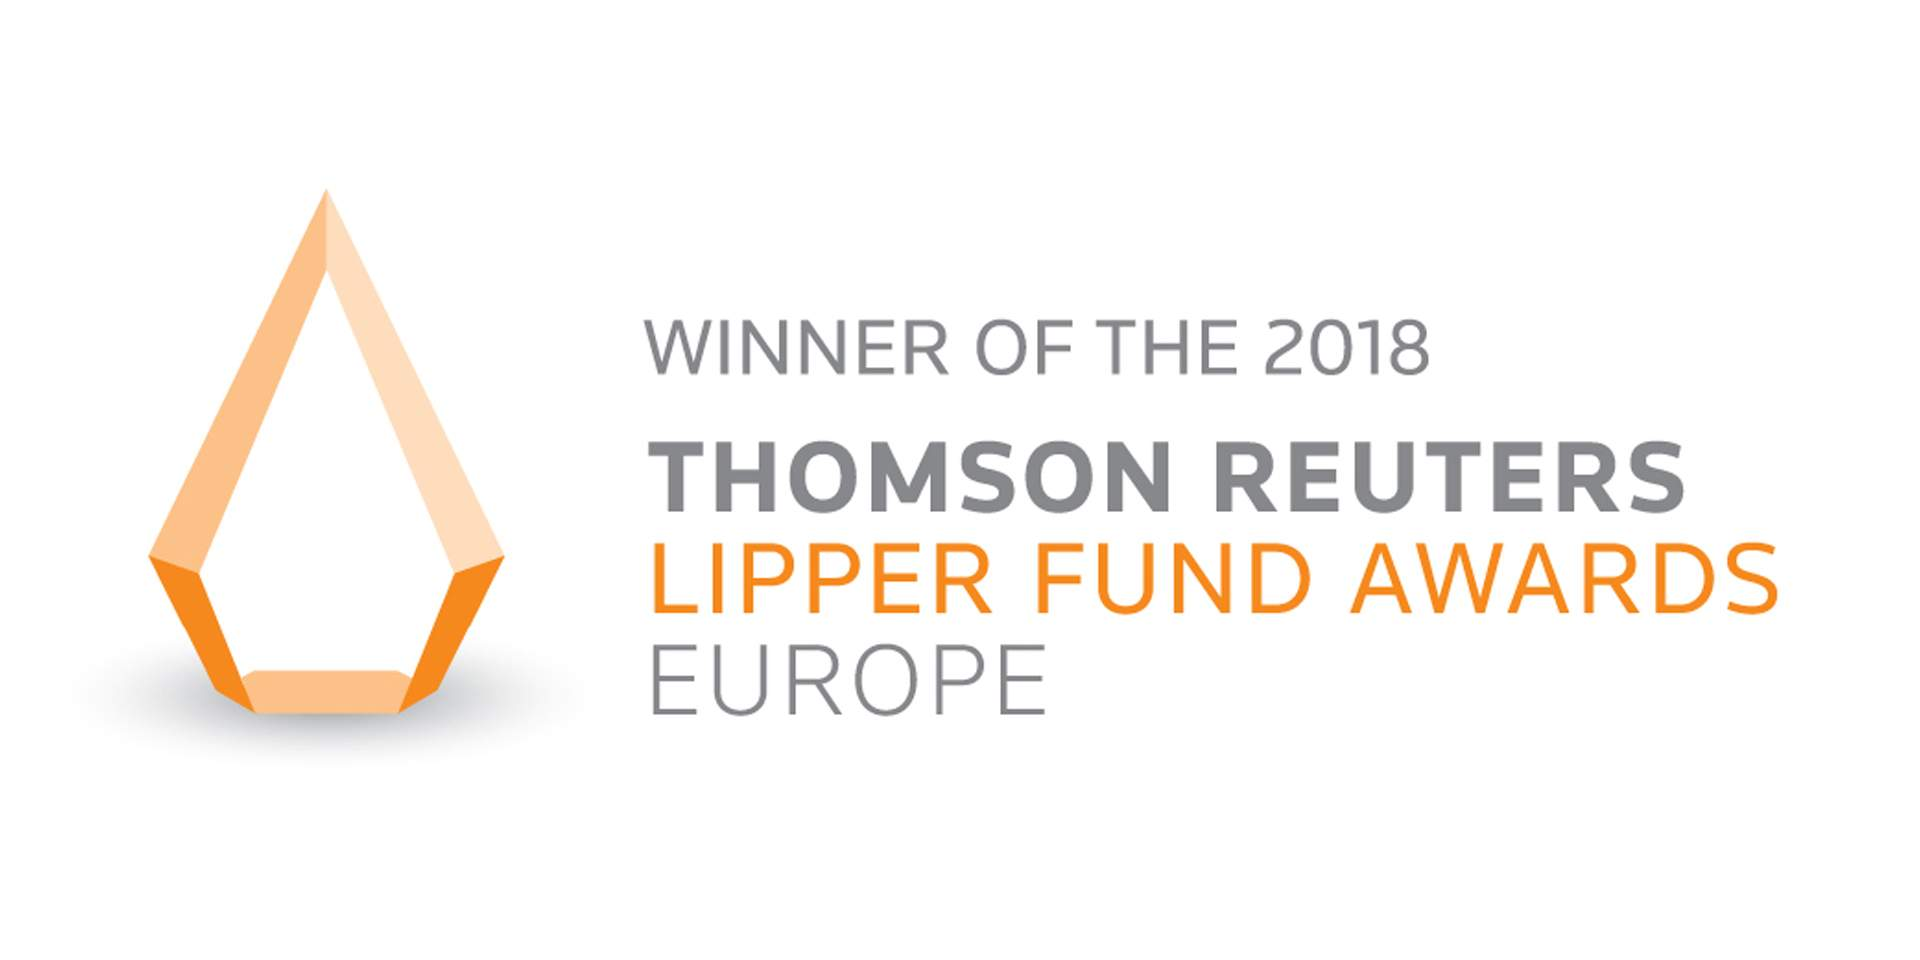 Lipper Fund Awards 2018